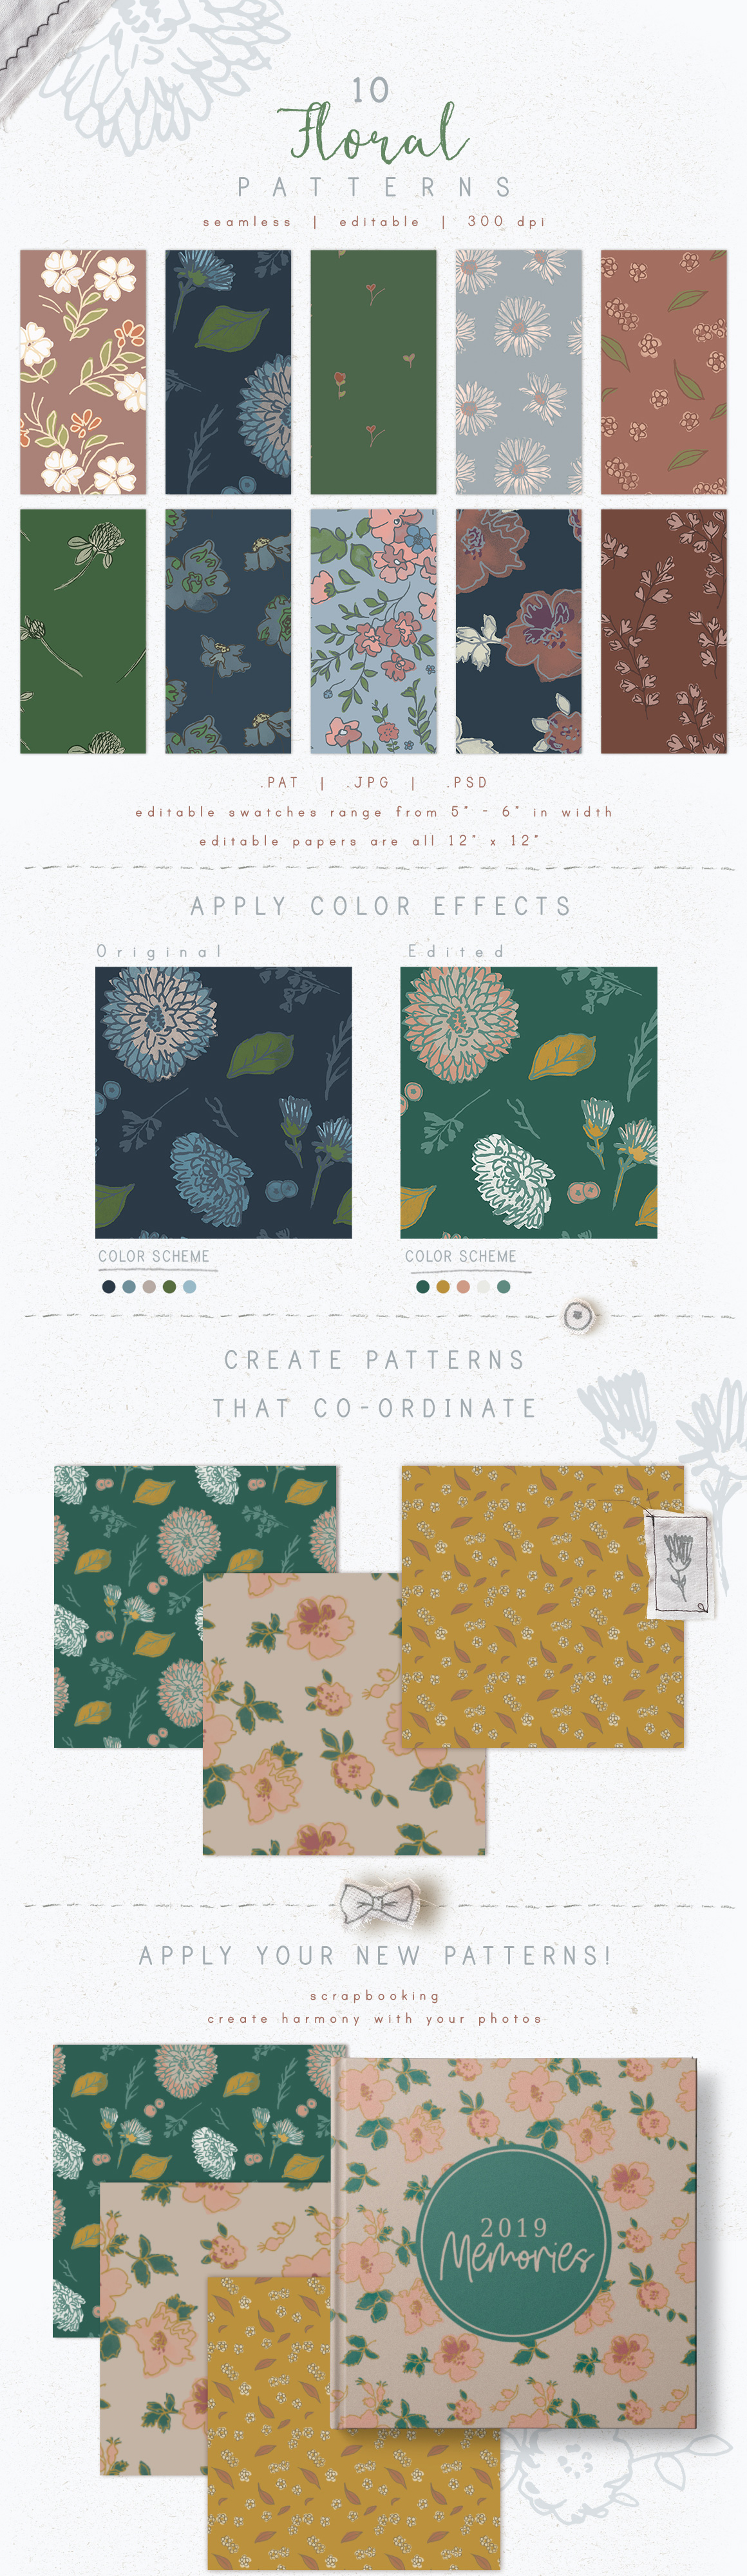 Seamless Editable Patterns - Floral